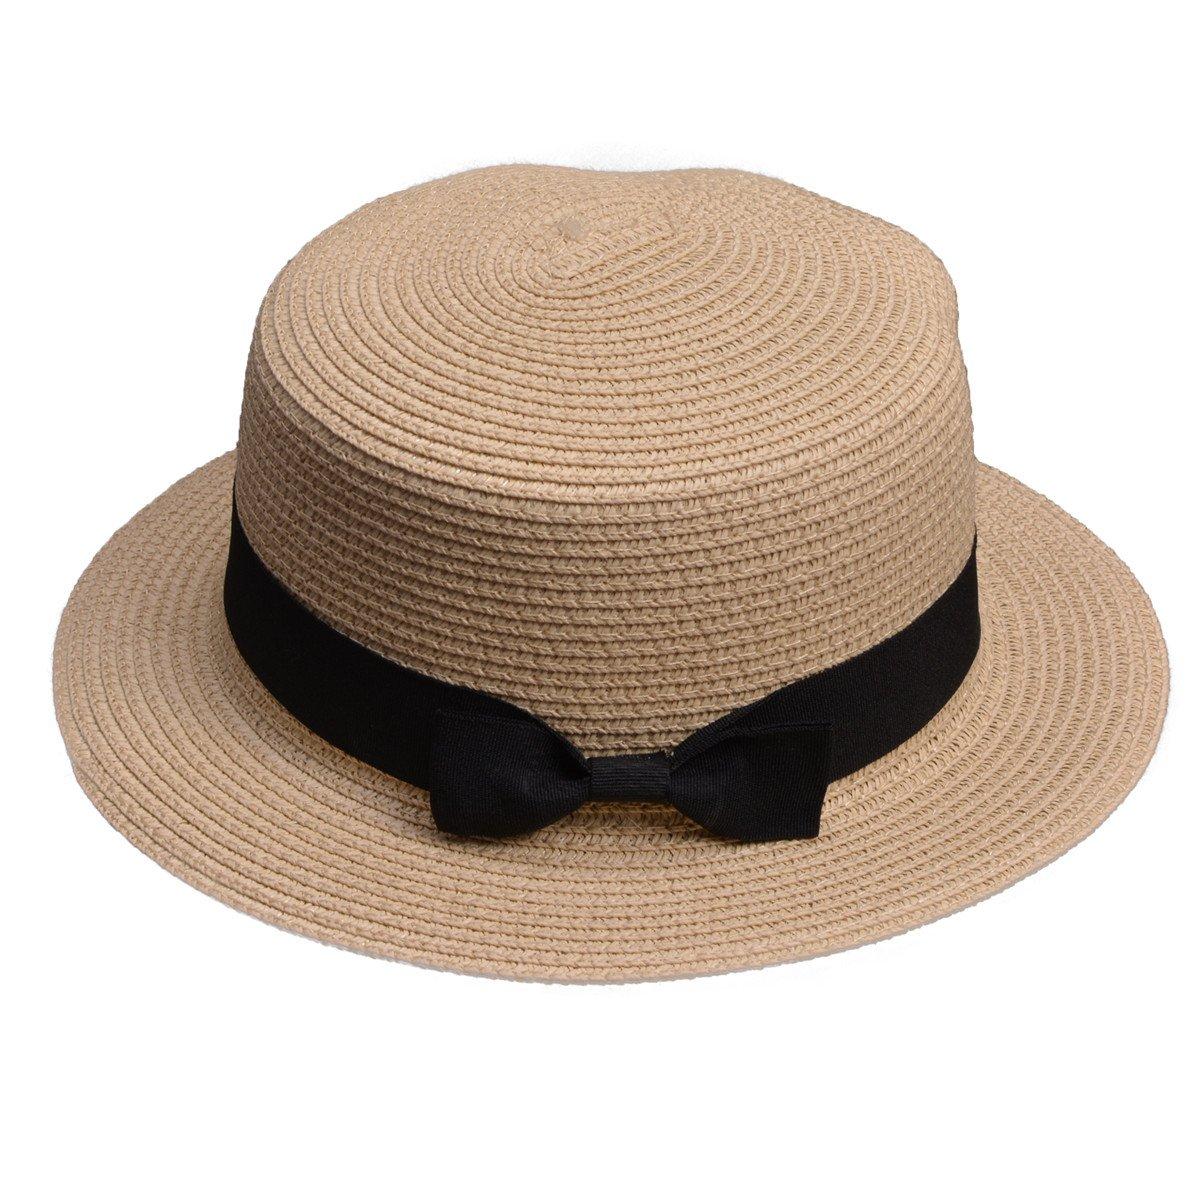 0336ac76 Online Cheap wholesale Lawliet Womens Straw Boater Hat Fedora Panama Flat  Top Ribbon Summer A456 Sun Hats Suppliers